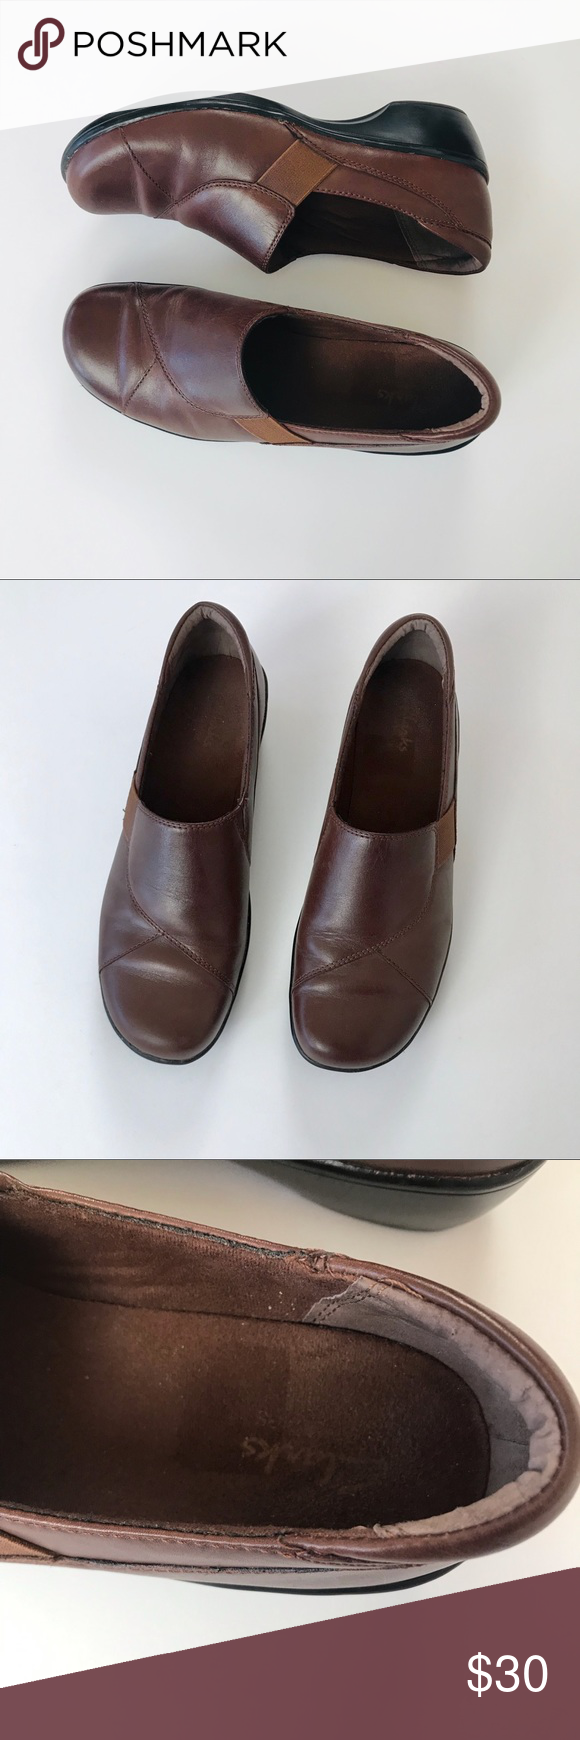 CLARKS Women's Brown Leather Slip On Wedge Loafers Minor scuffs on toes but overall great preowned condition  Material Leather upper and man made balance  Heel 1 5 in    M74E Clarks Shoes Flats & L is part of Dress shoes men -